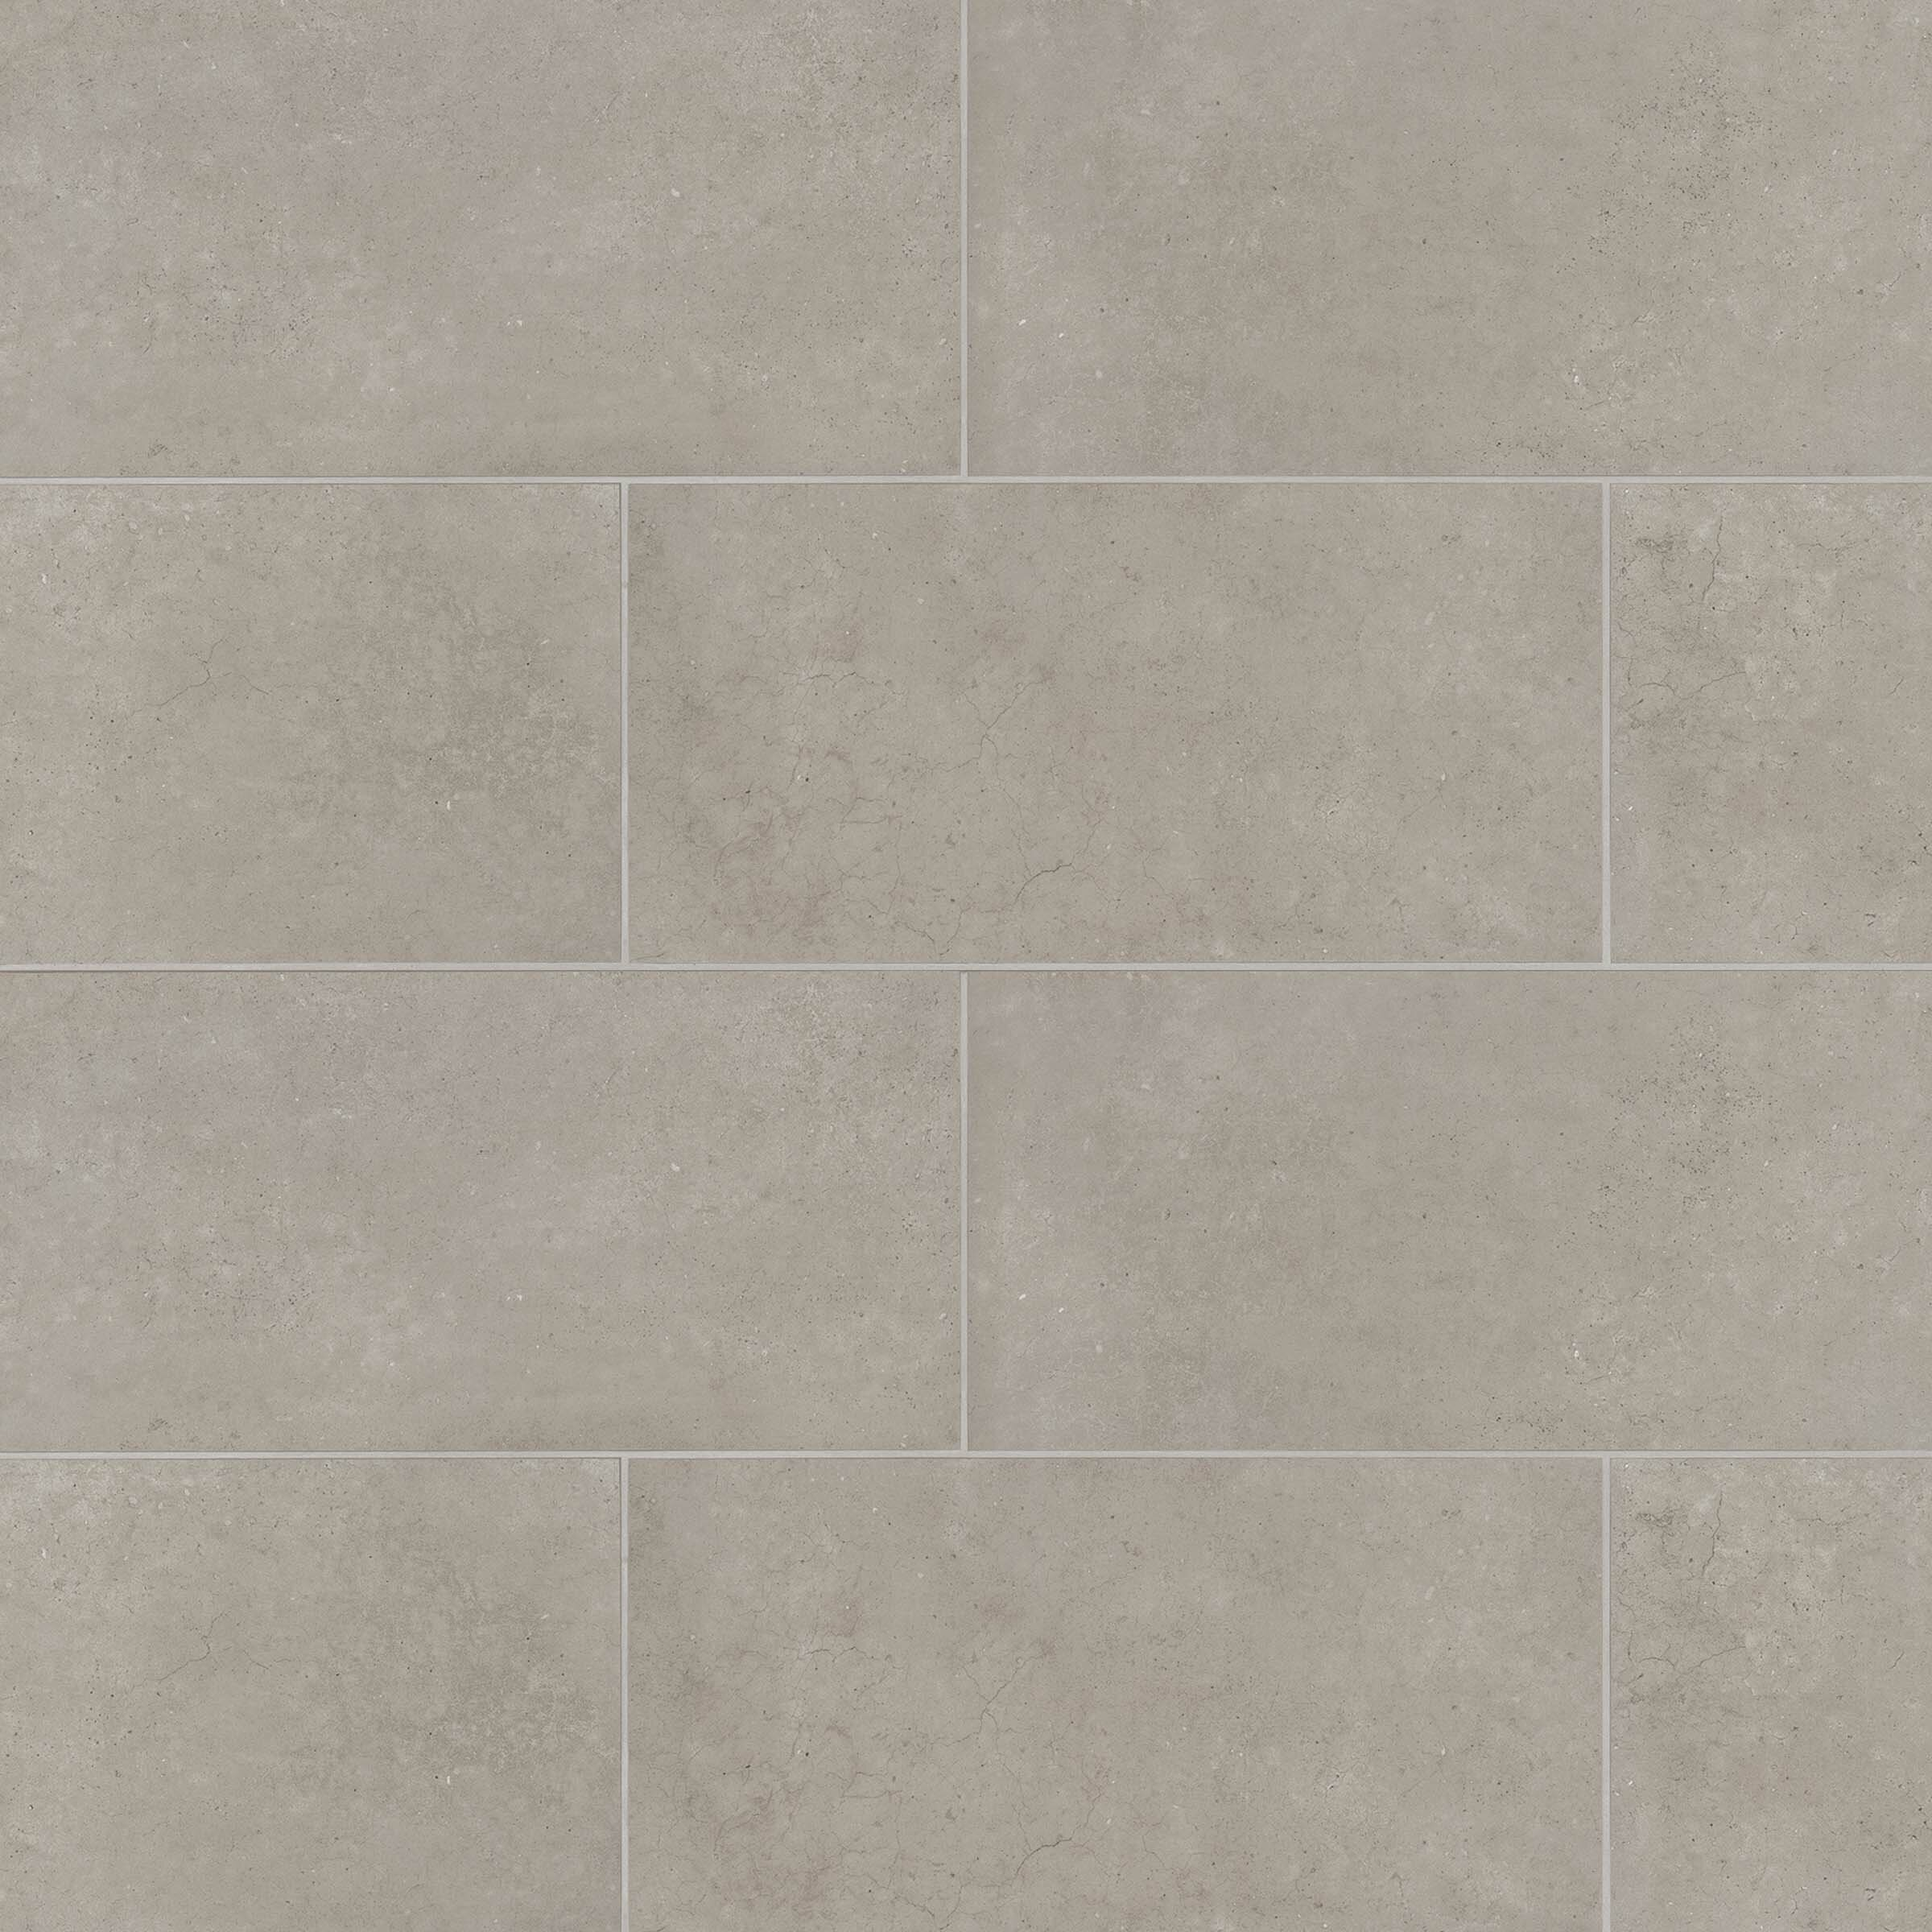 "Materika 6"" x 6"" Porcelain Concrete Look Wall & Floor Tile"